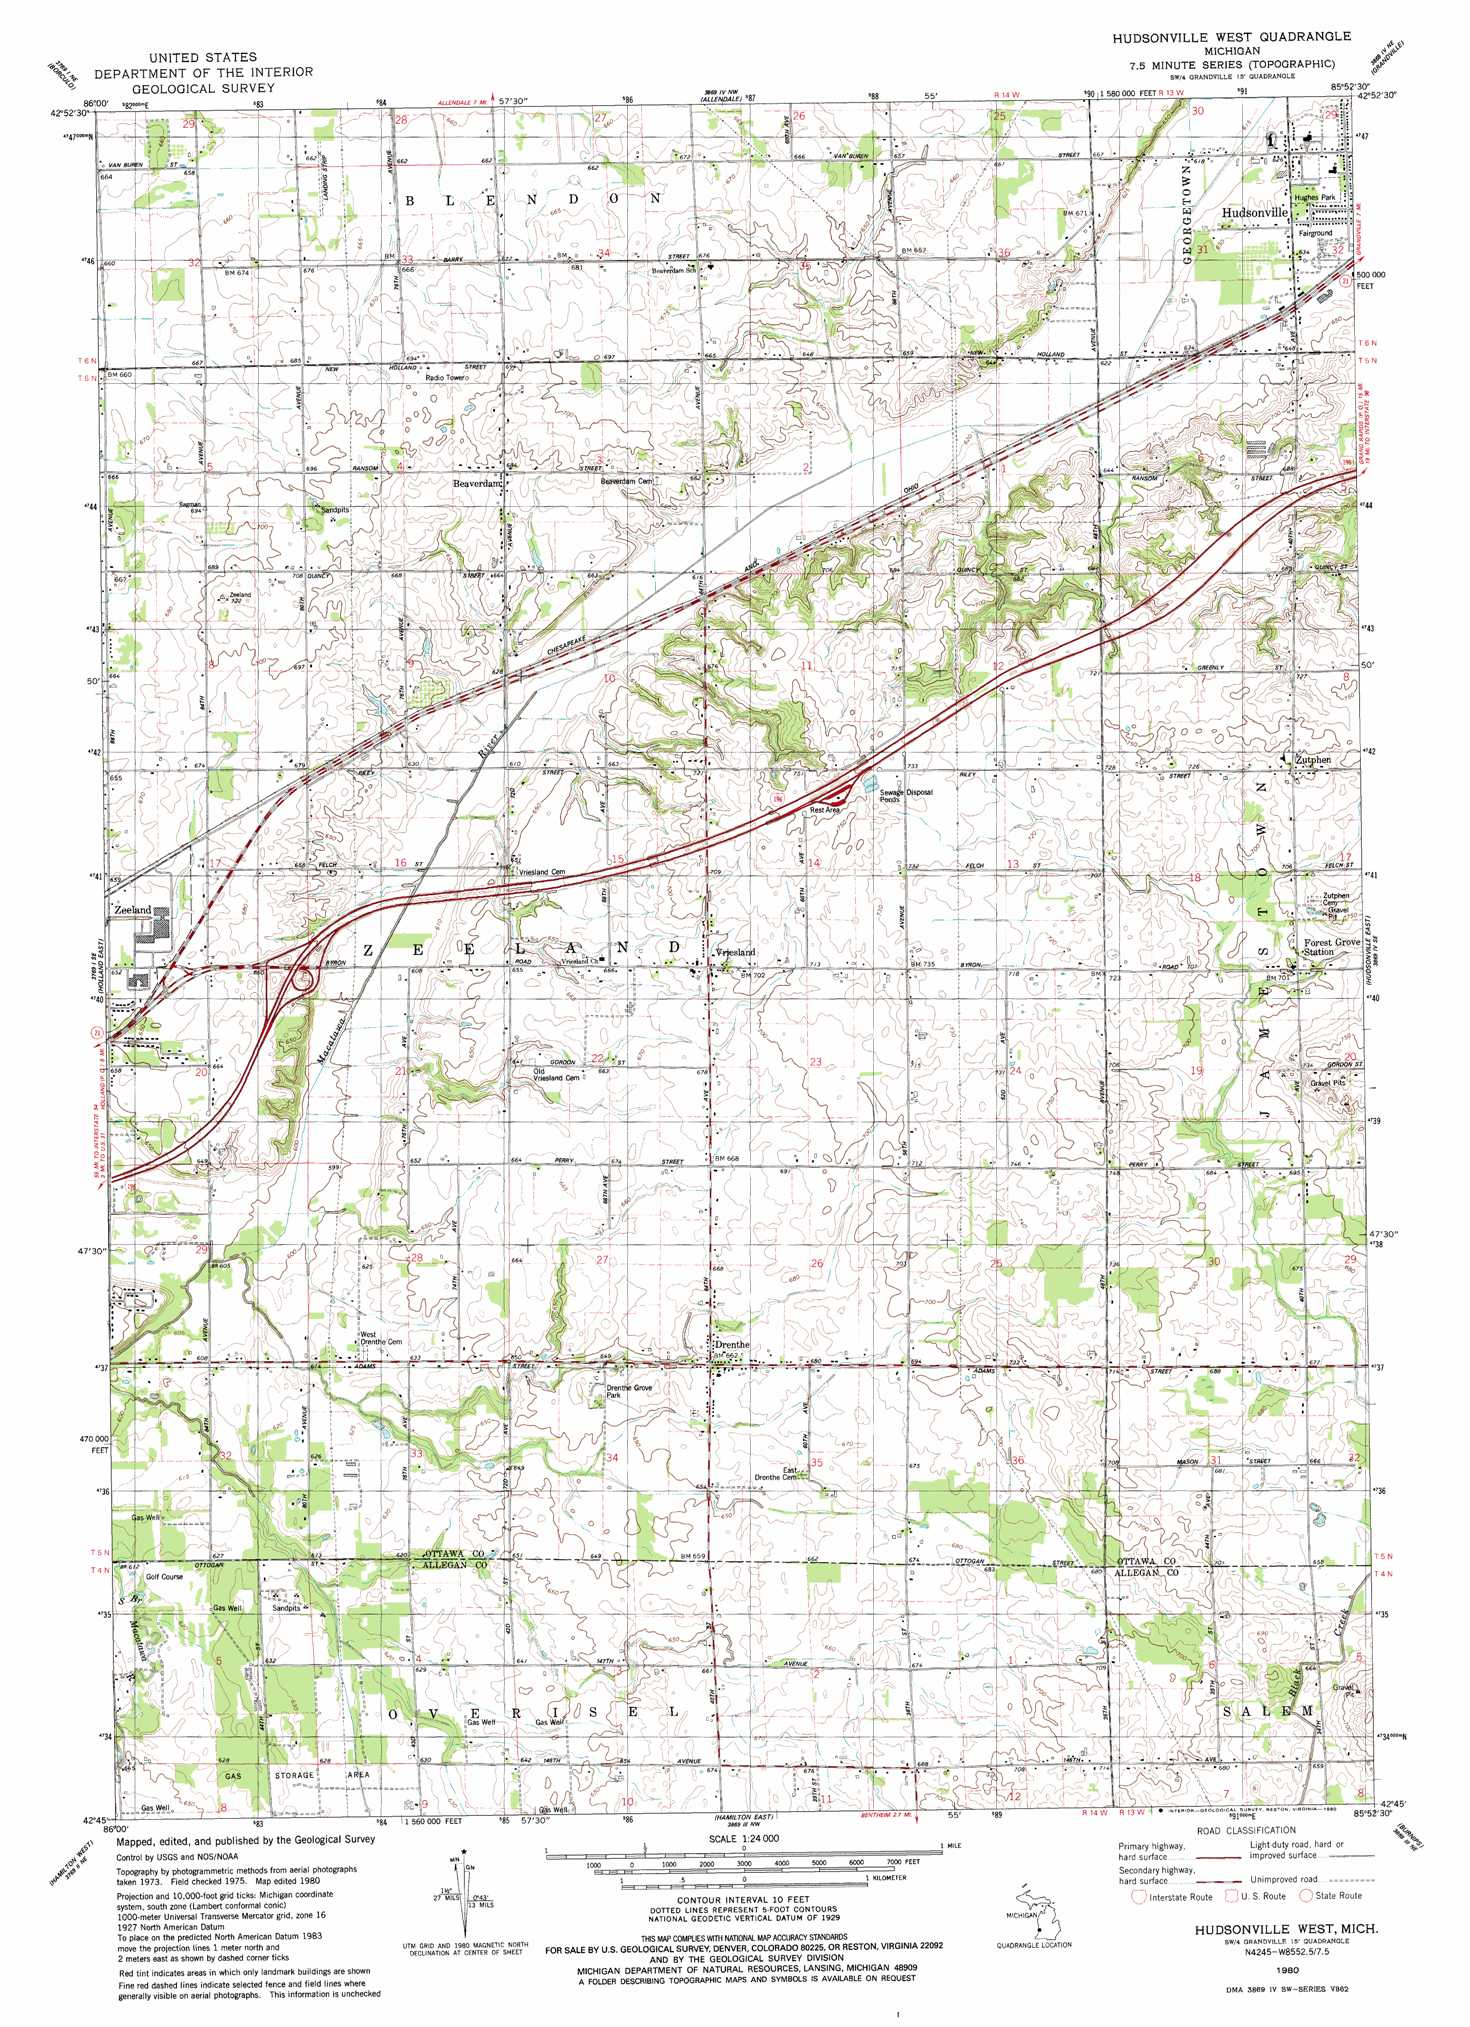 Hudsonville West topographic map MI USGS Topo Quad 42085g8